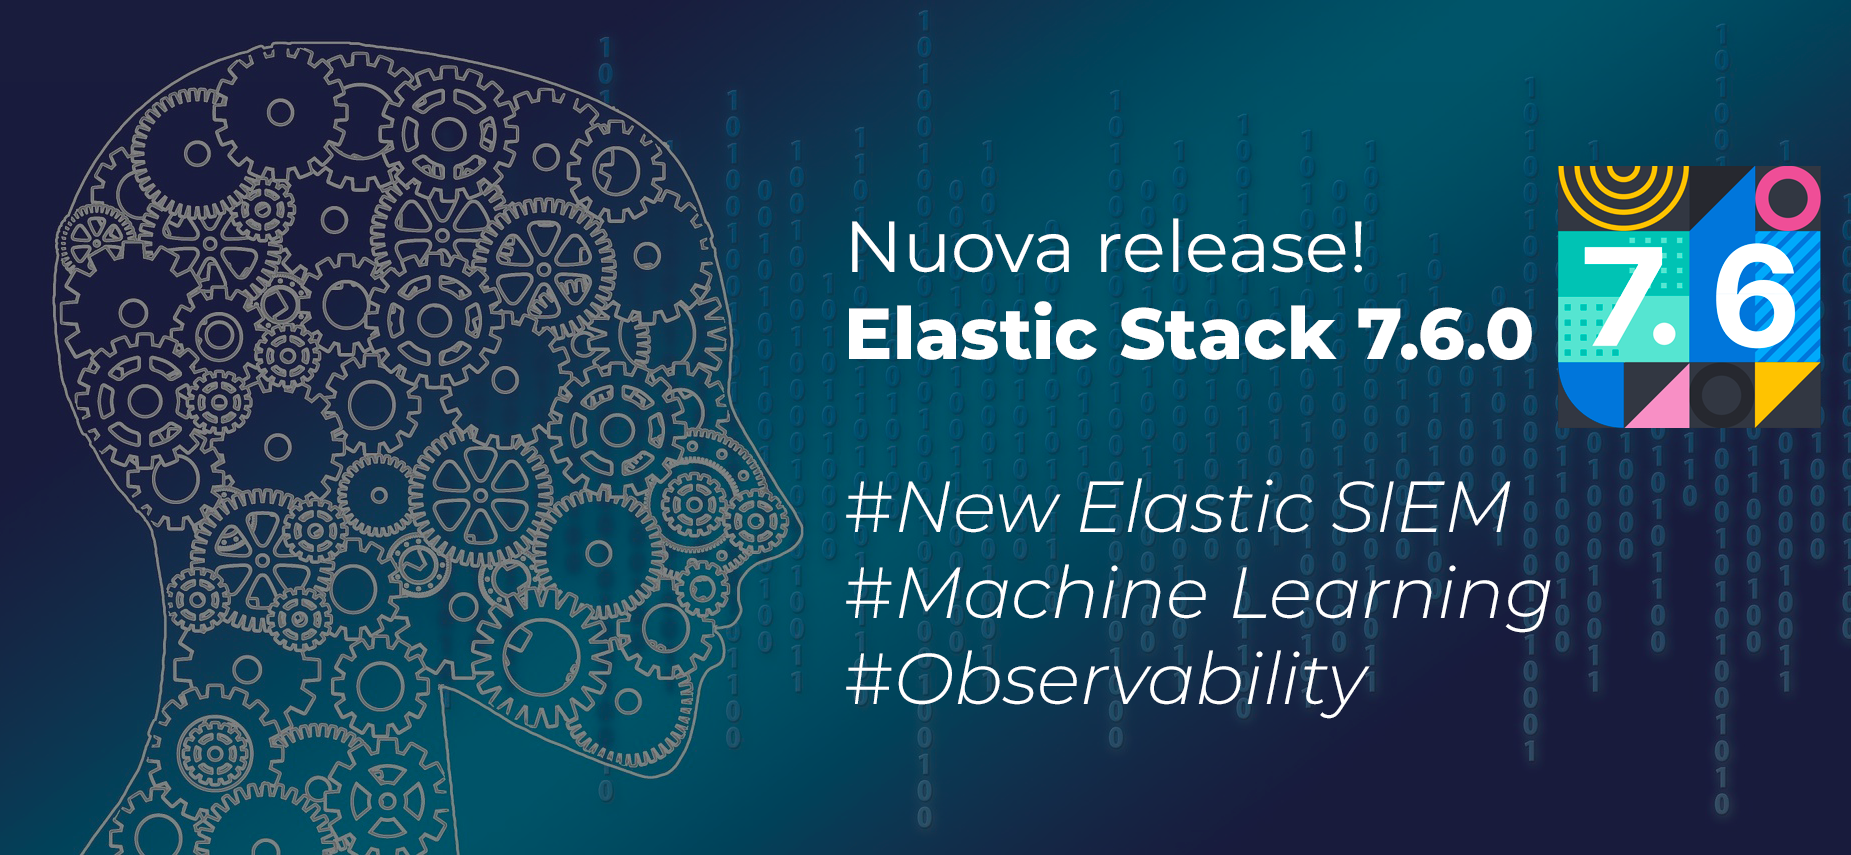 Elastic Stack 7.6.0: sicurezza, observability e machine learning